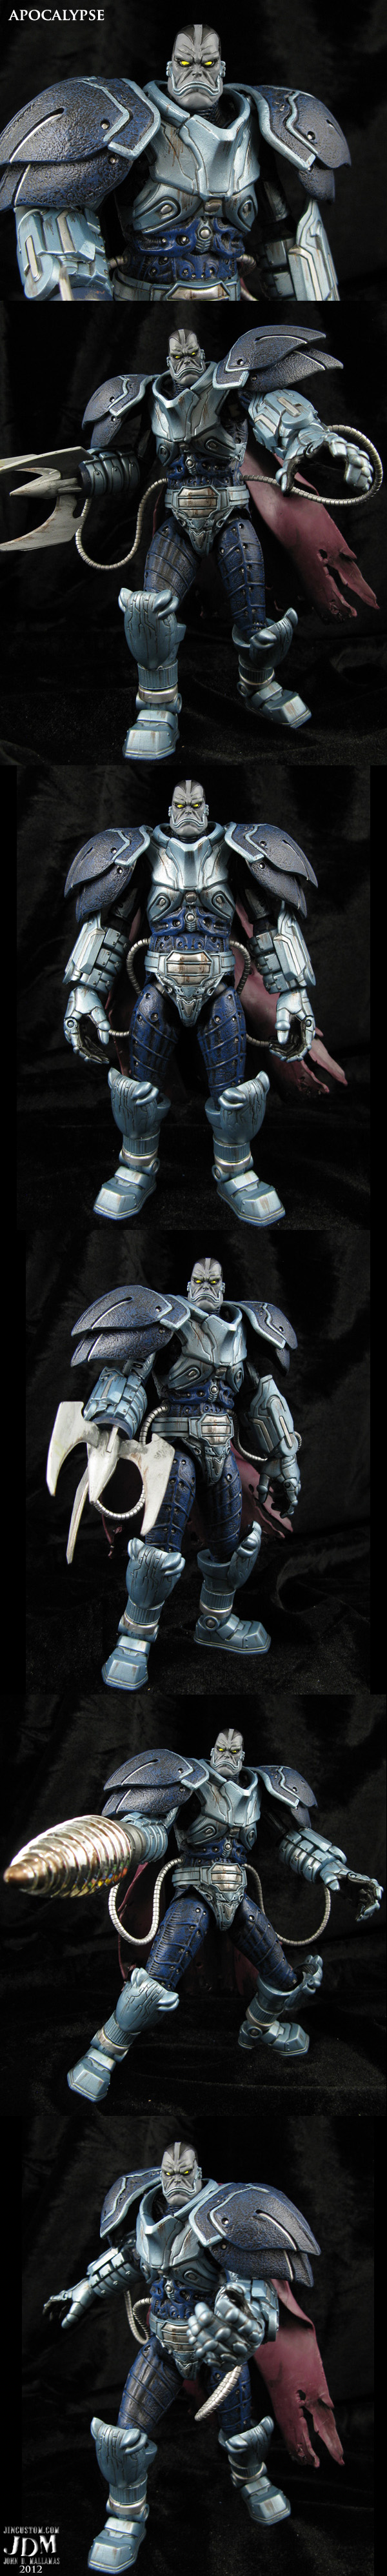 Custom Apocalypse Marvel movie style figure by Jin-Saotome